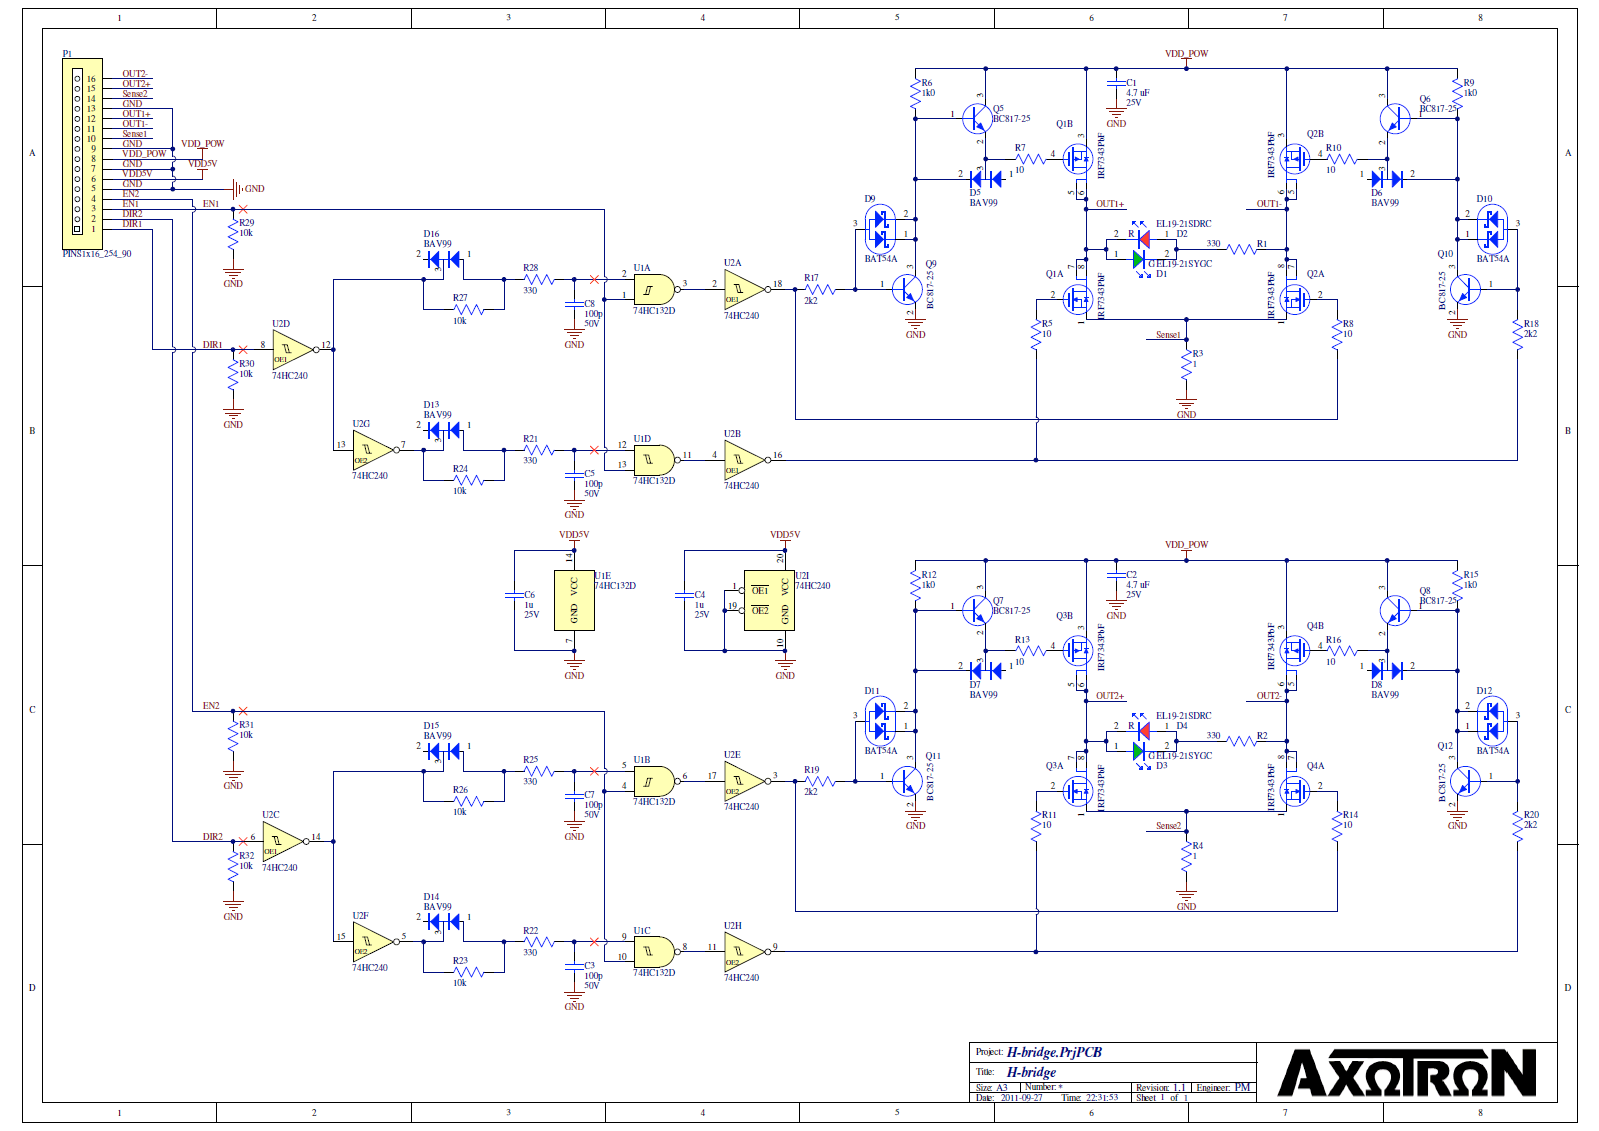 Axotron Bridge Project Circuit Diag Timing Circuitry